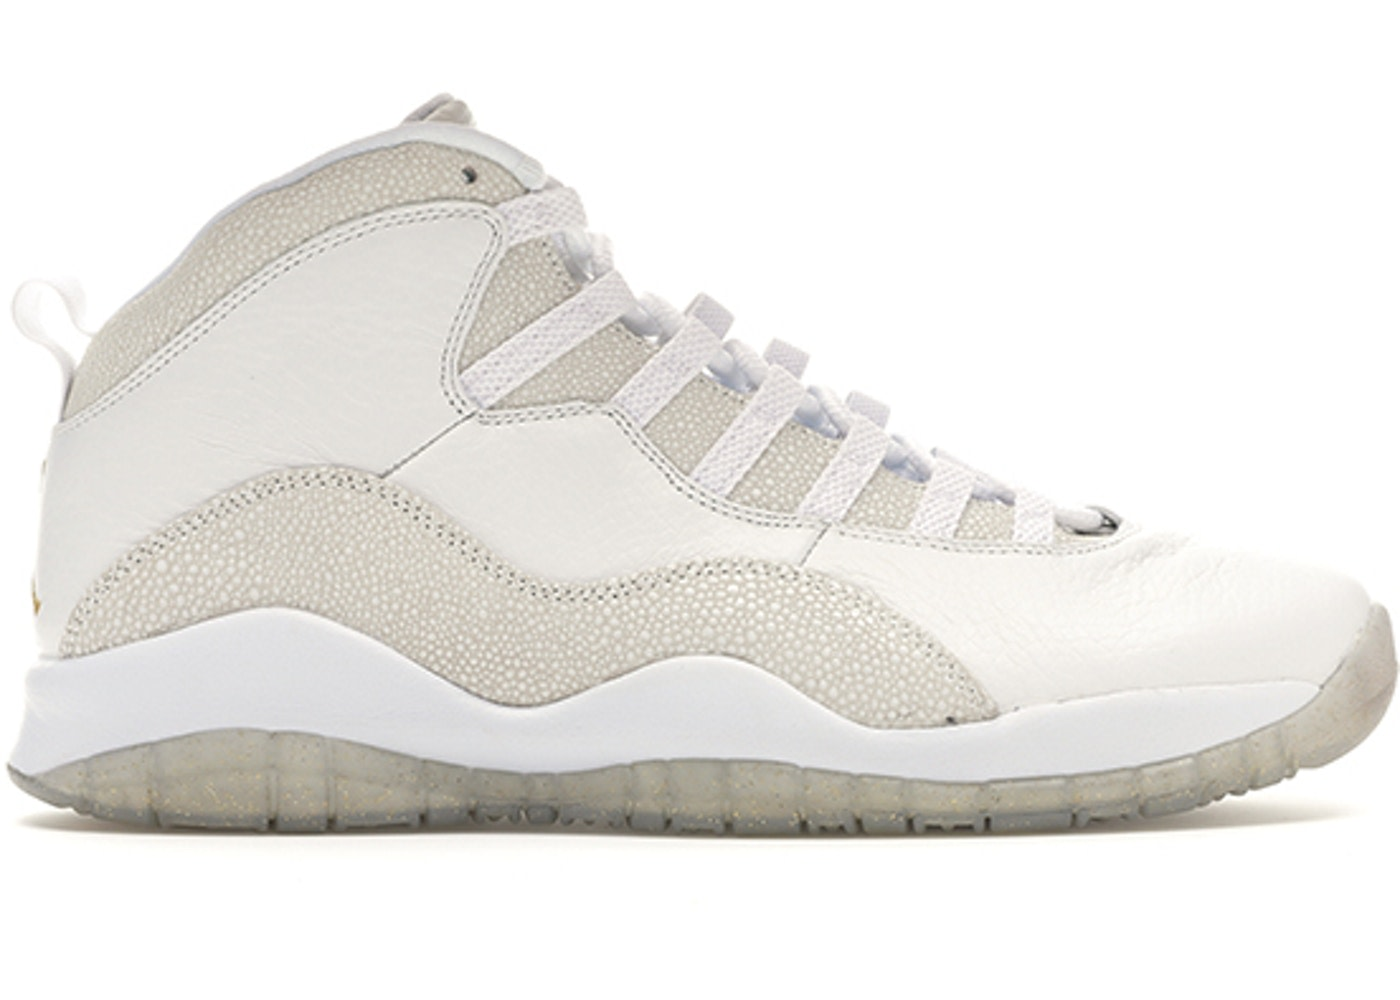 Air Jordan 10 White OVO